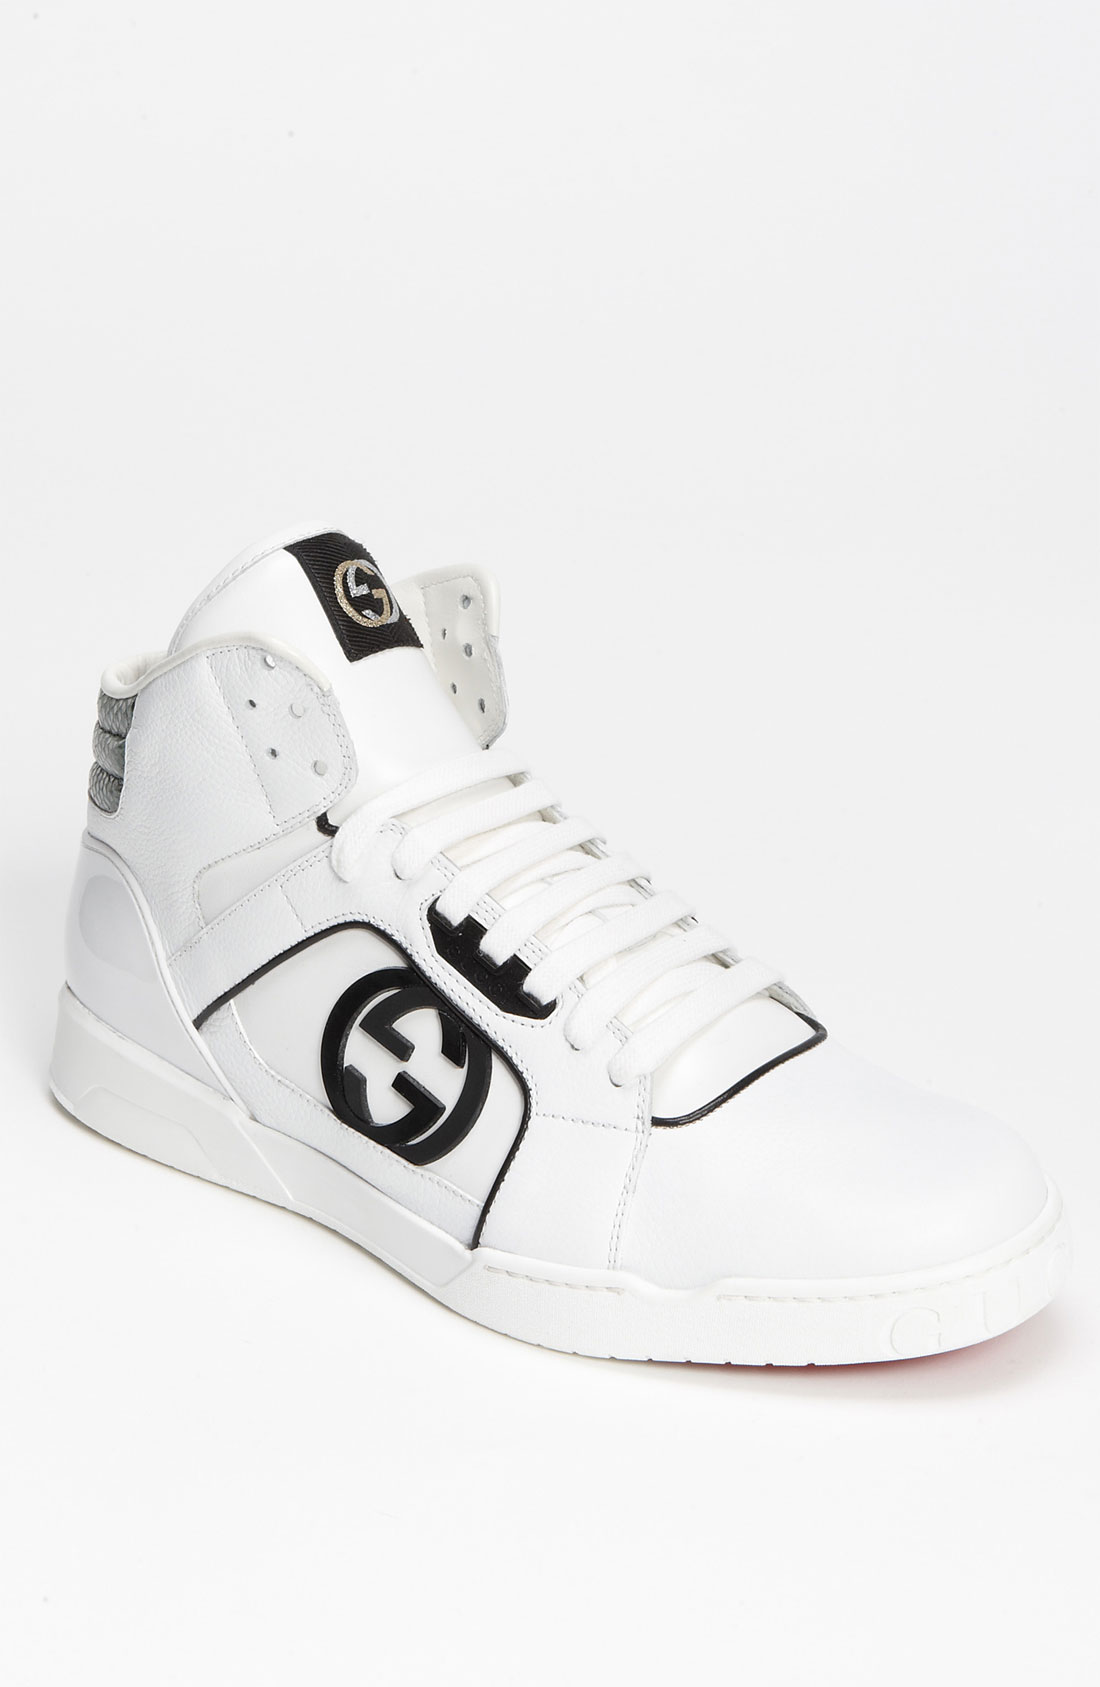 gucci rebound mid high top sneaker in white for men lyst. Black Bedroom Furniture Sets. Home Design Ideas